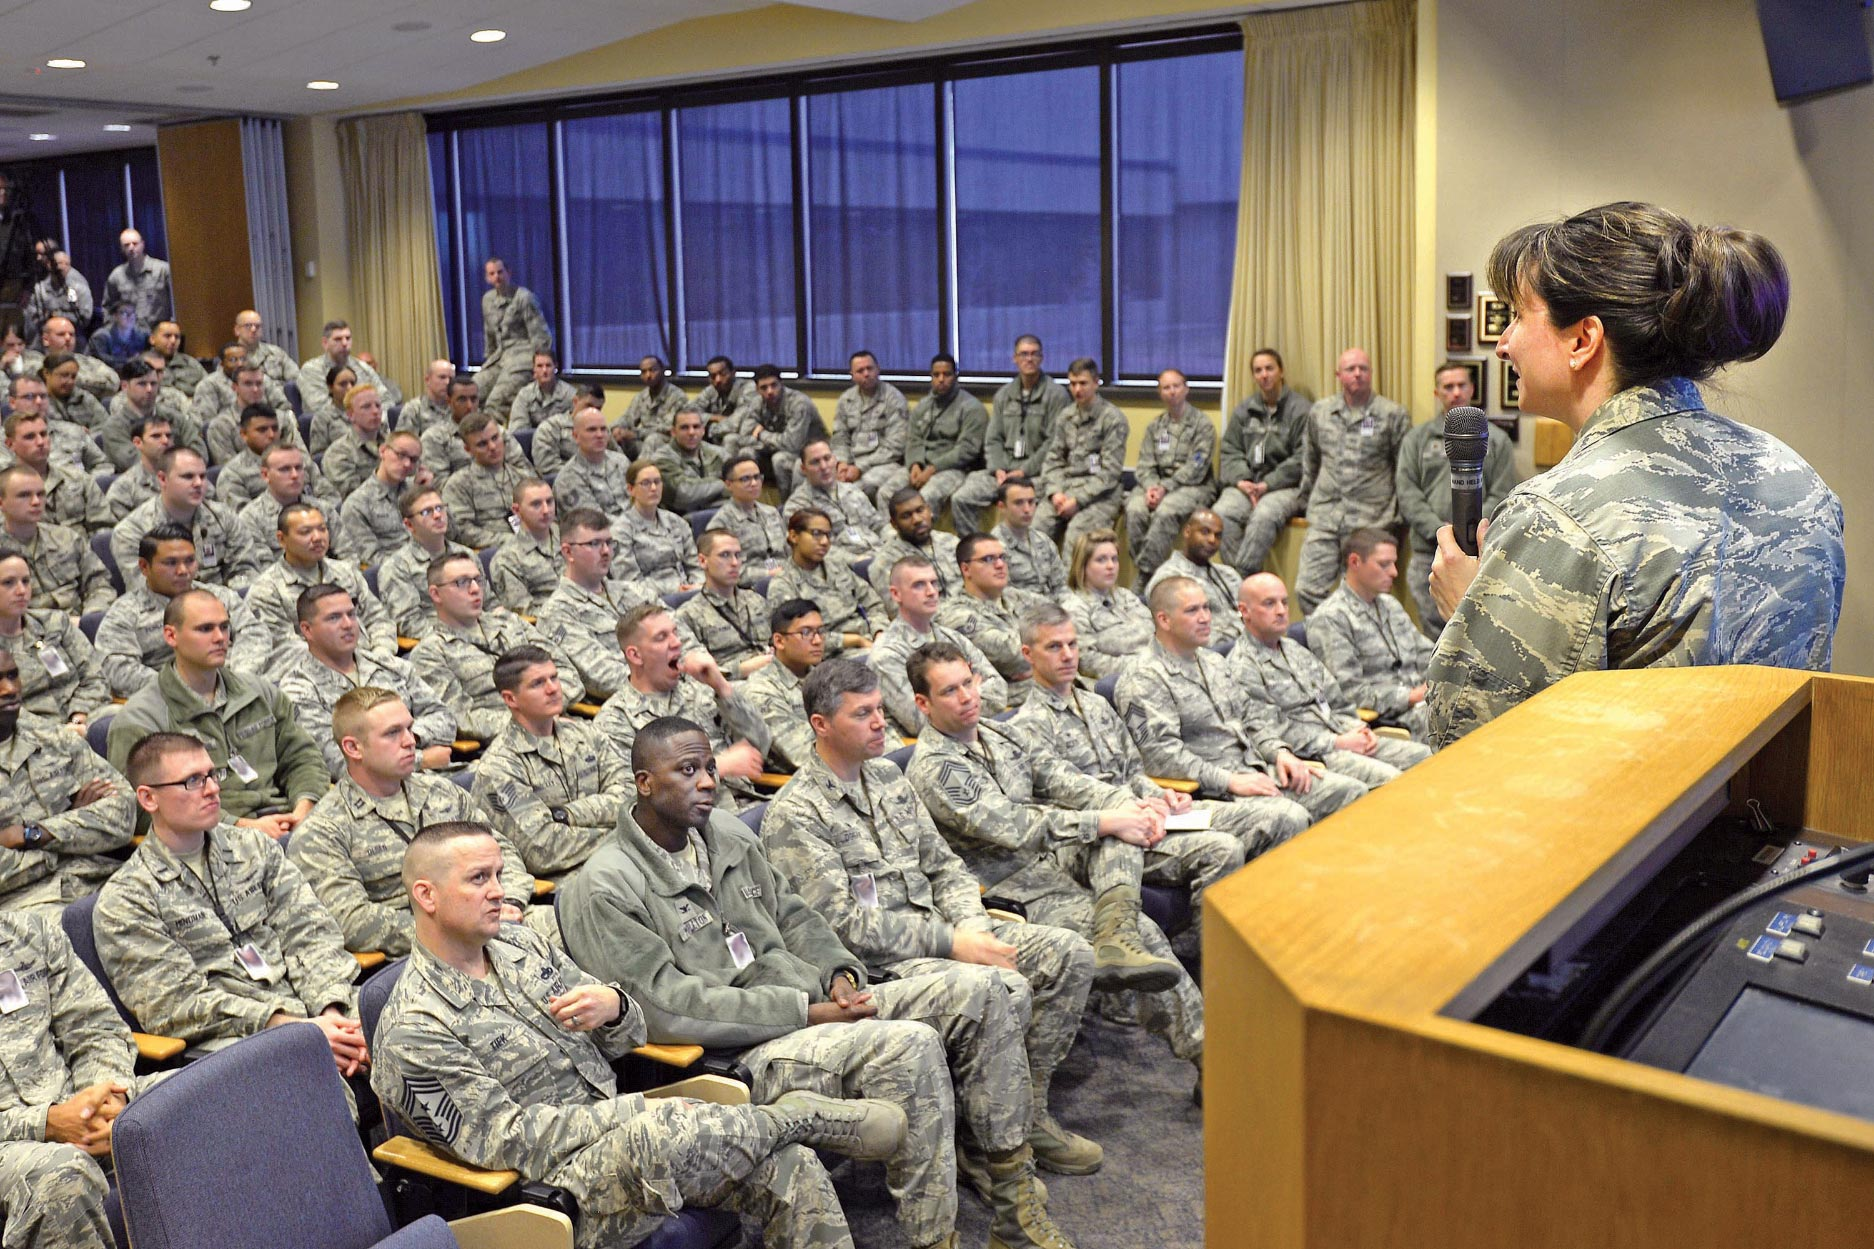 U.S. Air Force photo by Dennis Rogers Col. Jennifer Grant, 50th Space Wing commander, answers questions during an all-call at Schriever Air Force Base, Colorado, Jan. 10, 2018. Grant provided the opportunity for a question and answer segment, which encouraged Schriever members to speak up about matters important to them.